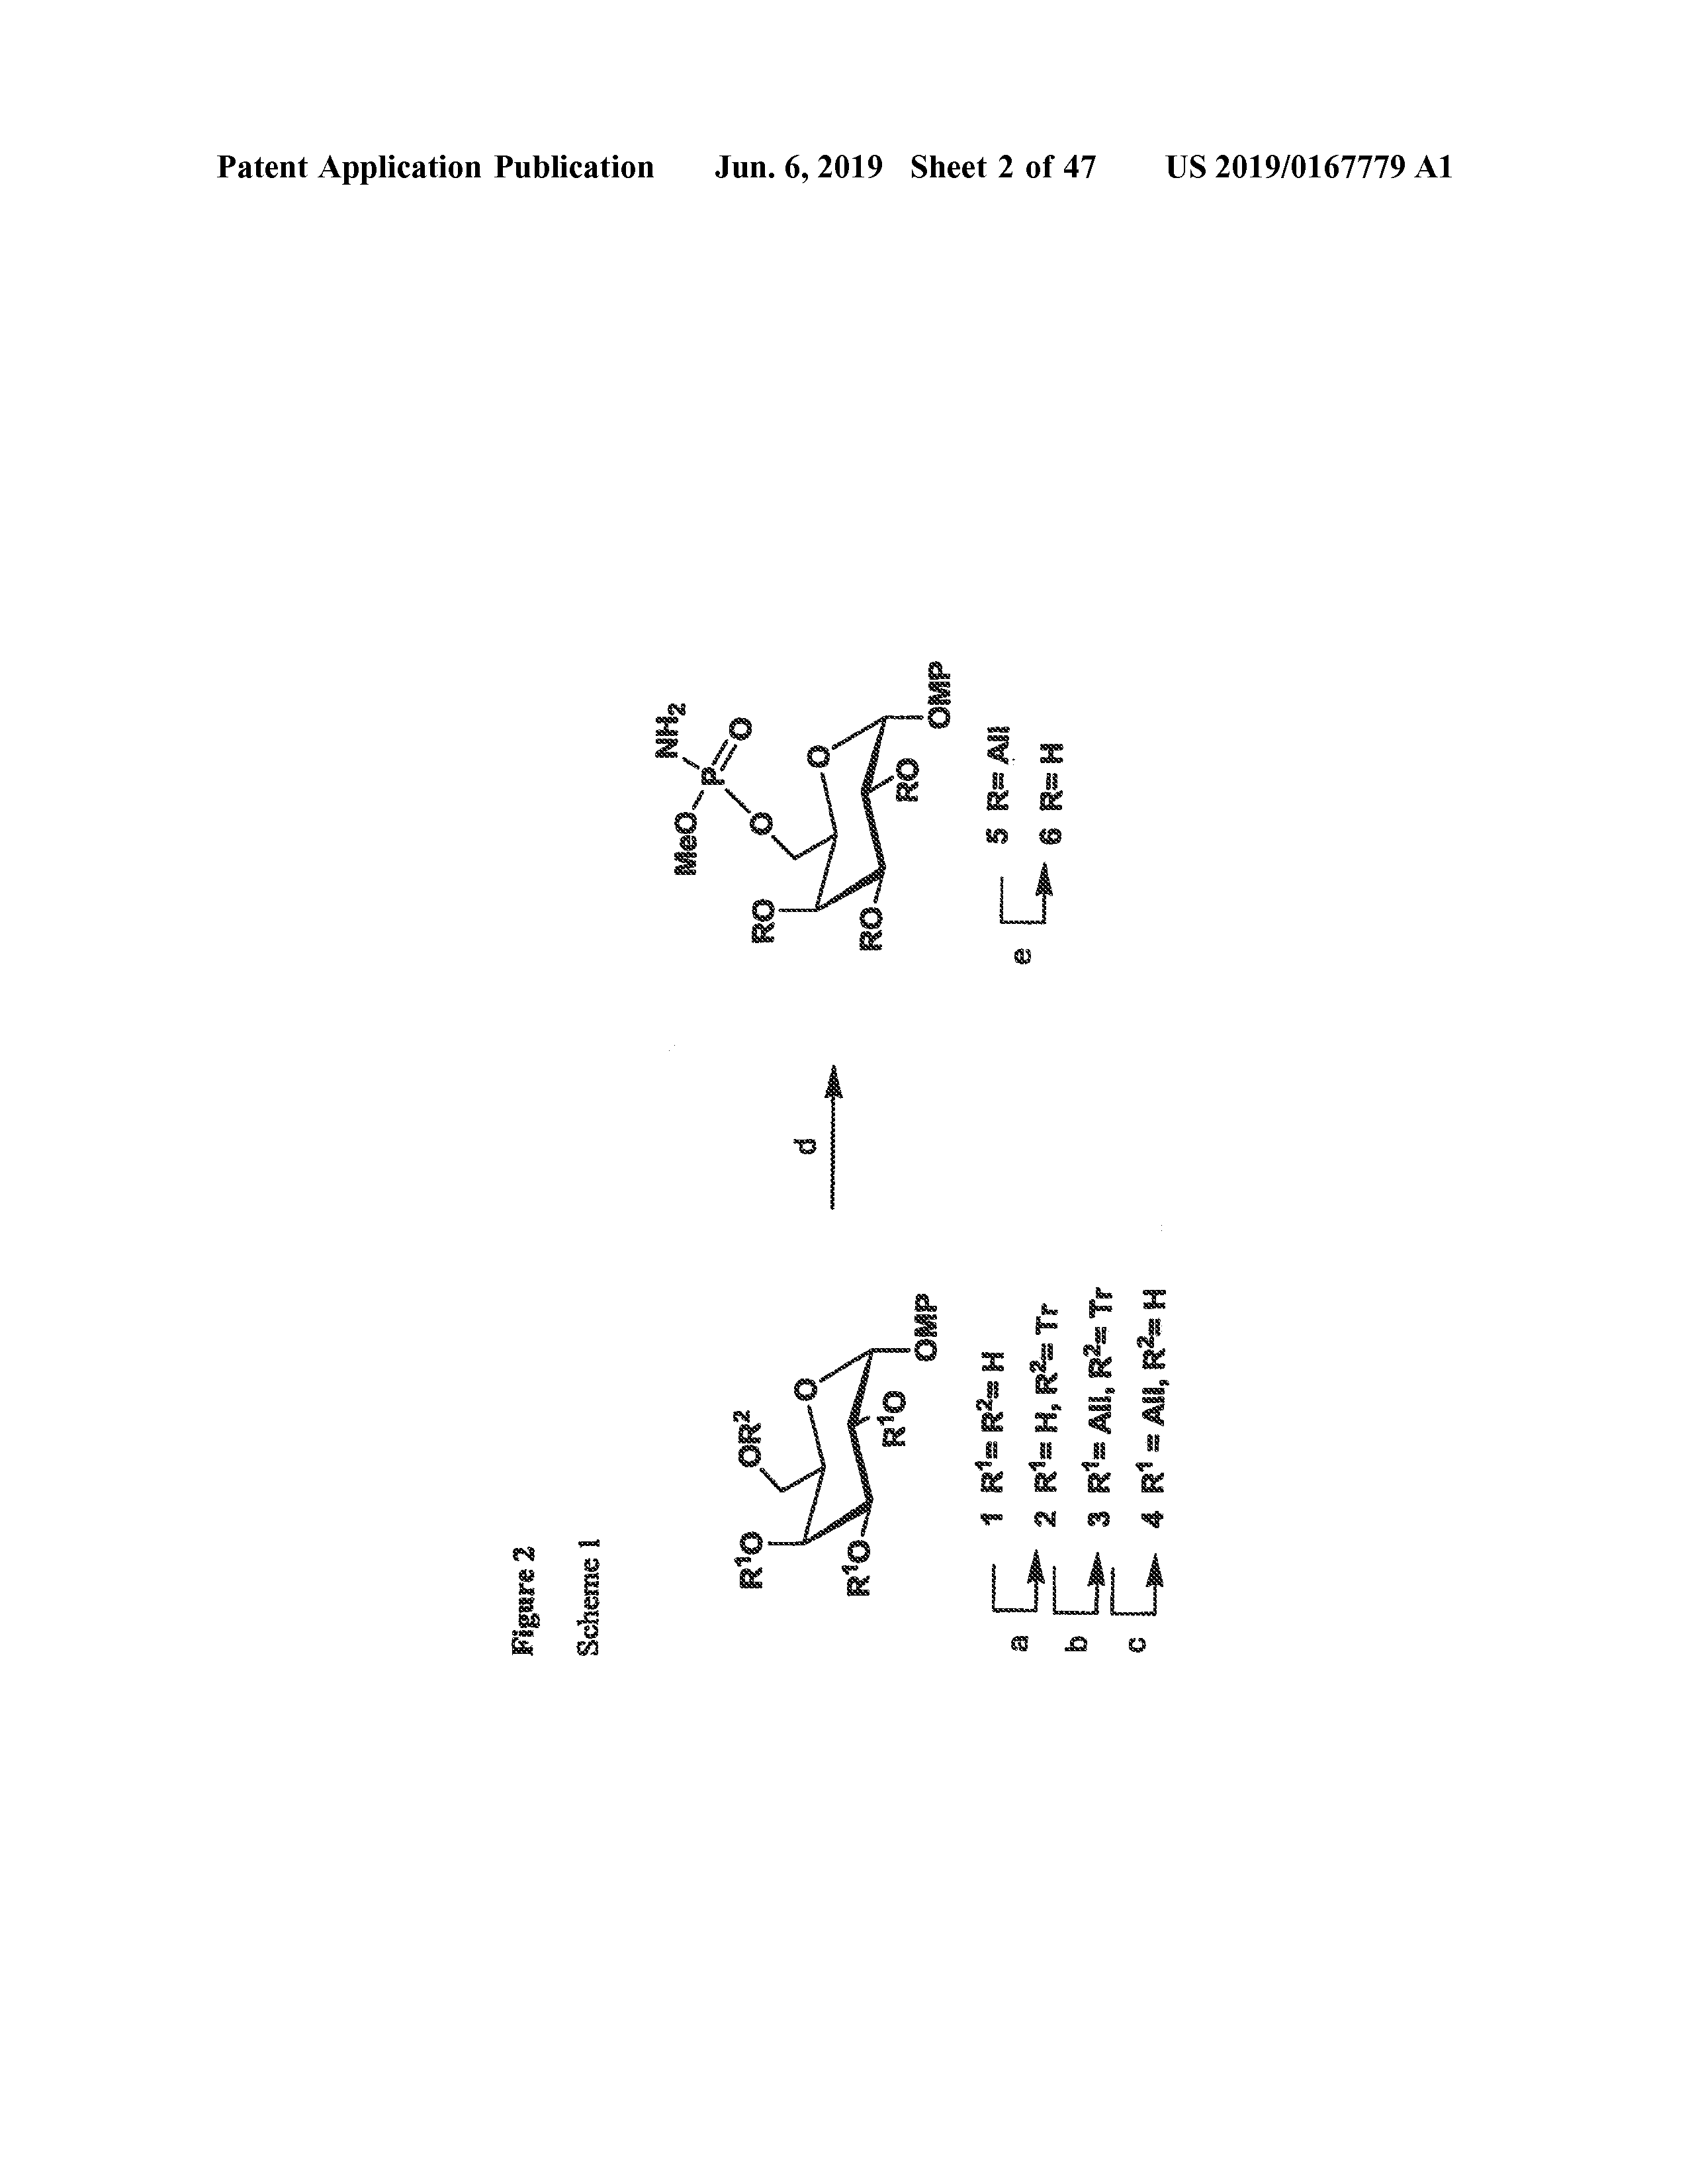 US 2019/0167779 A1 - Synthetic Antigen Constructs Against